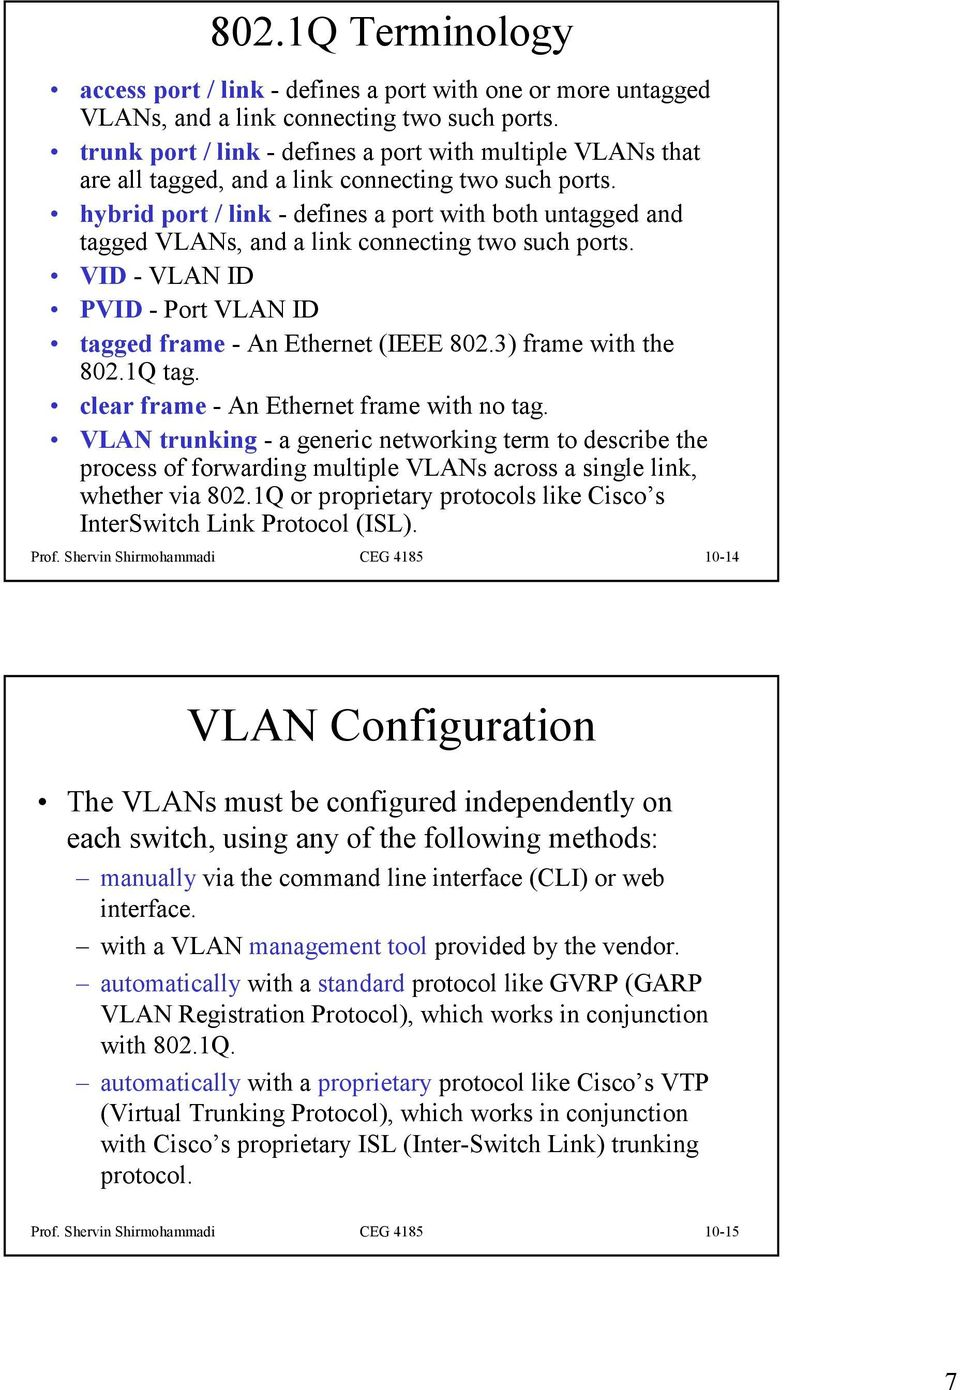 hybrid port / link - defines a port with both untagged and tagged VLANs, and a link connecting two such ports. VID - VLAN ID PVID - Port VLAN ID tagged frame - An Ethernet (IEEE 802.